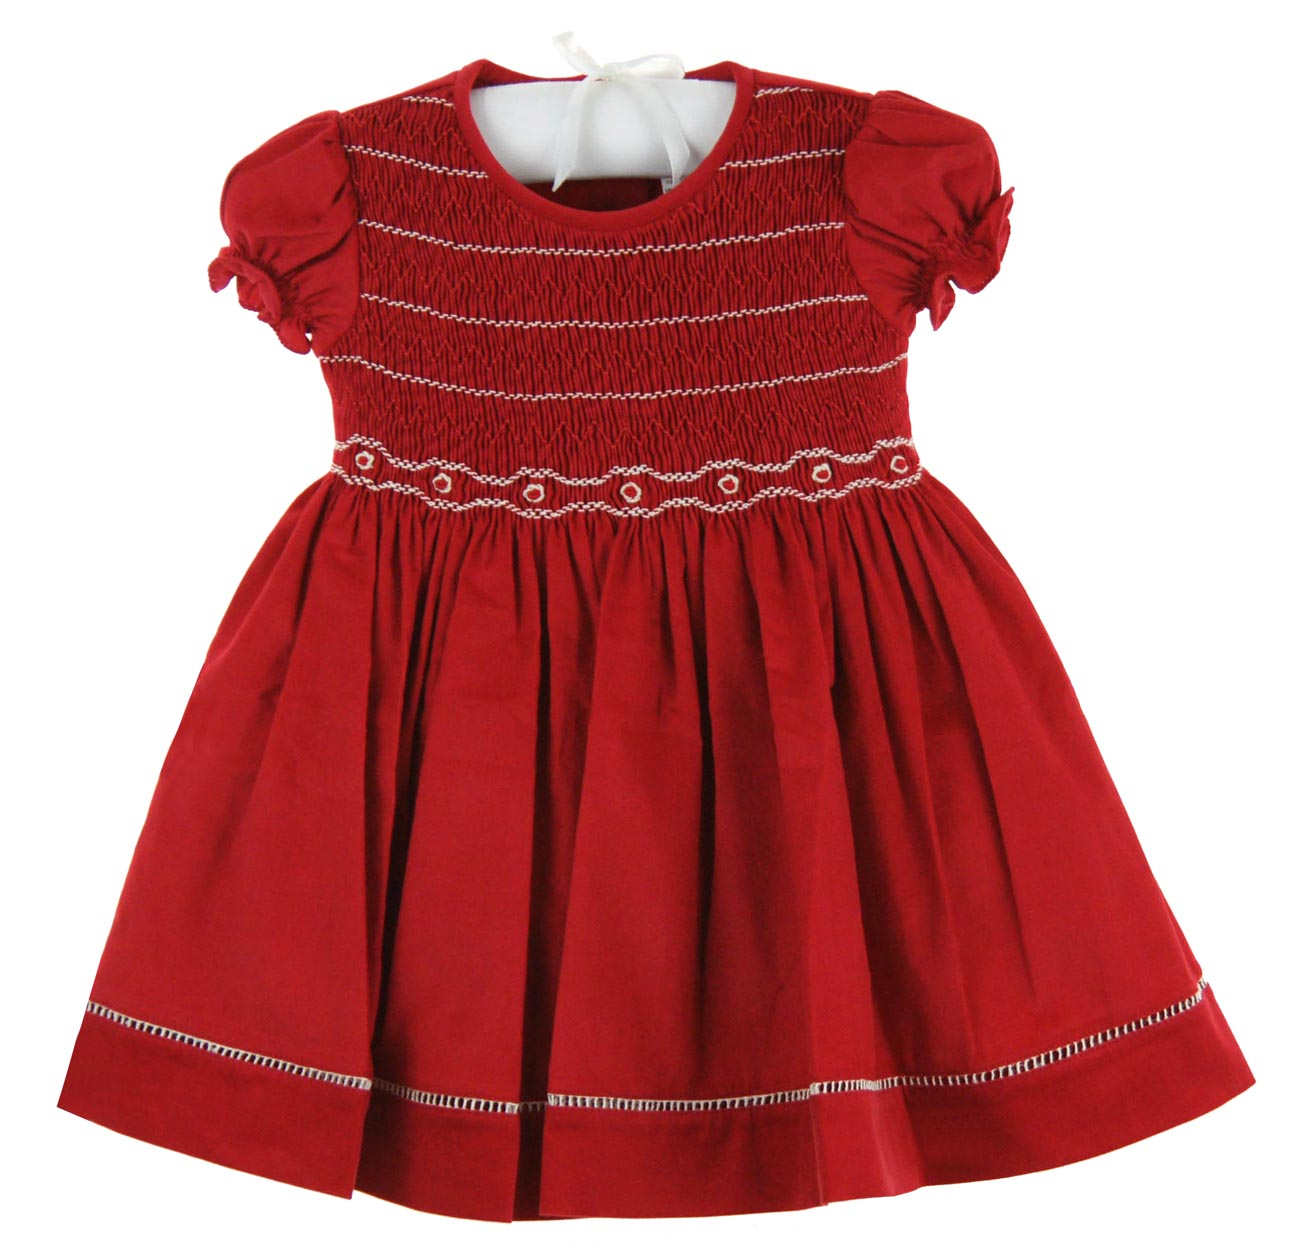 WillBeth Red Smocked Dress With White Embroideryred